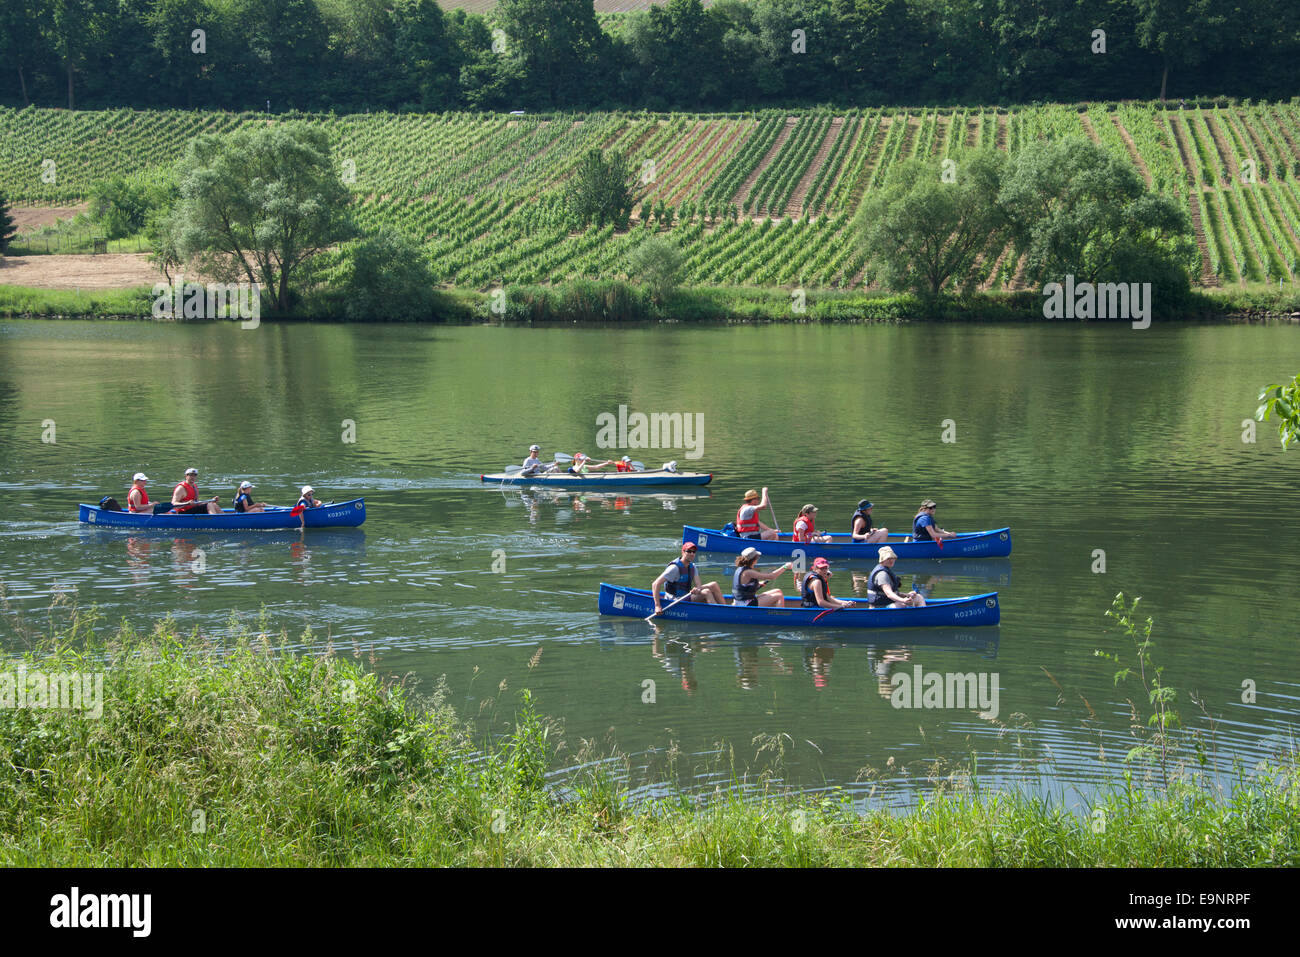 Paddling canoes Moselle River near Zell Moselle Valley Germany - Stock Image